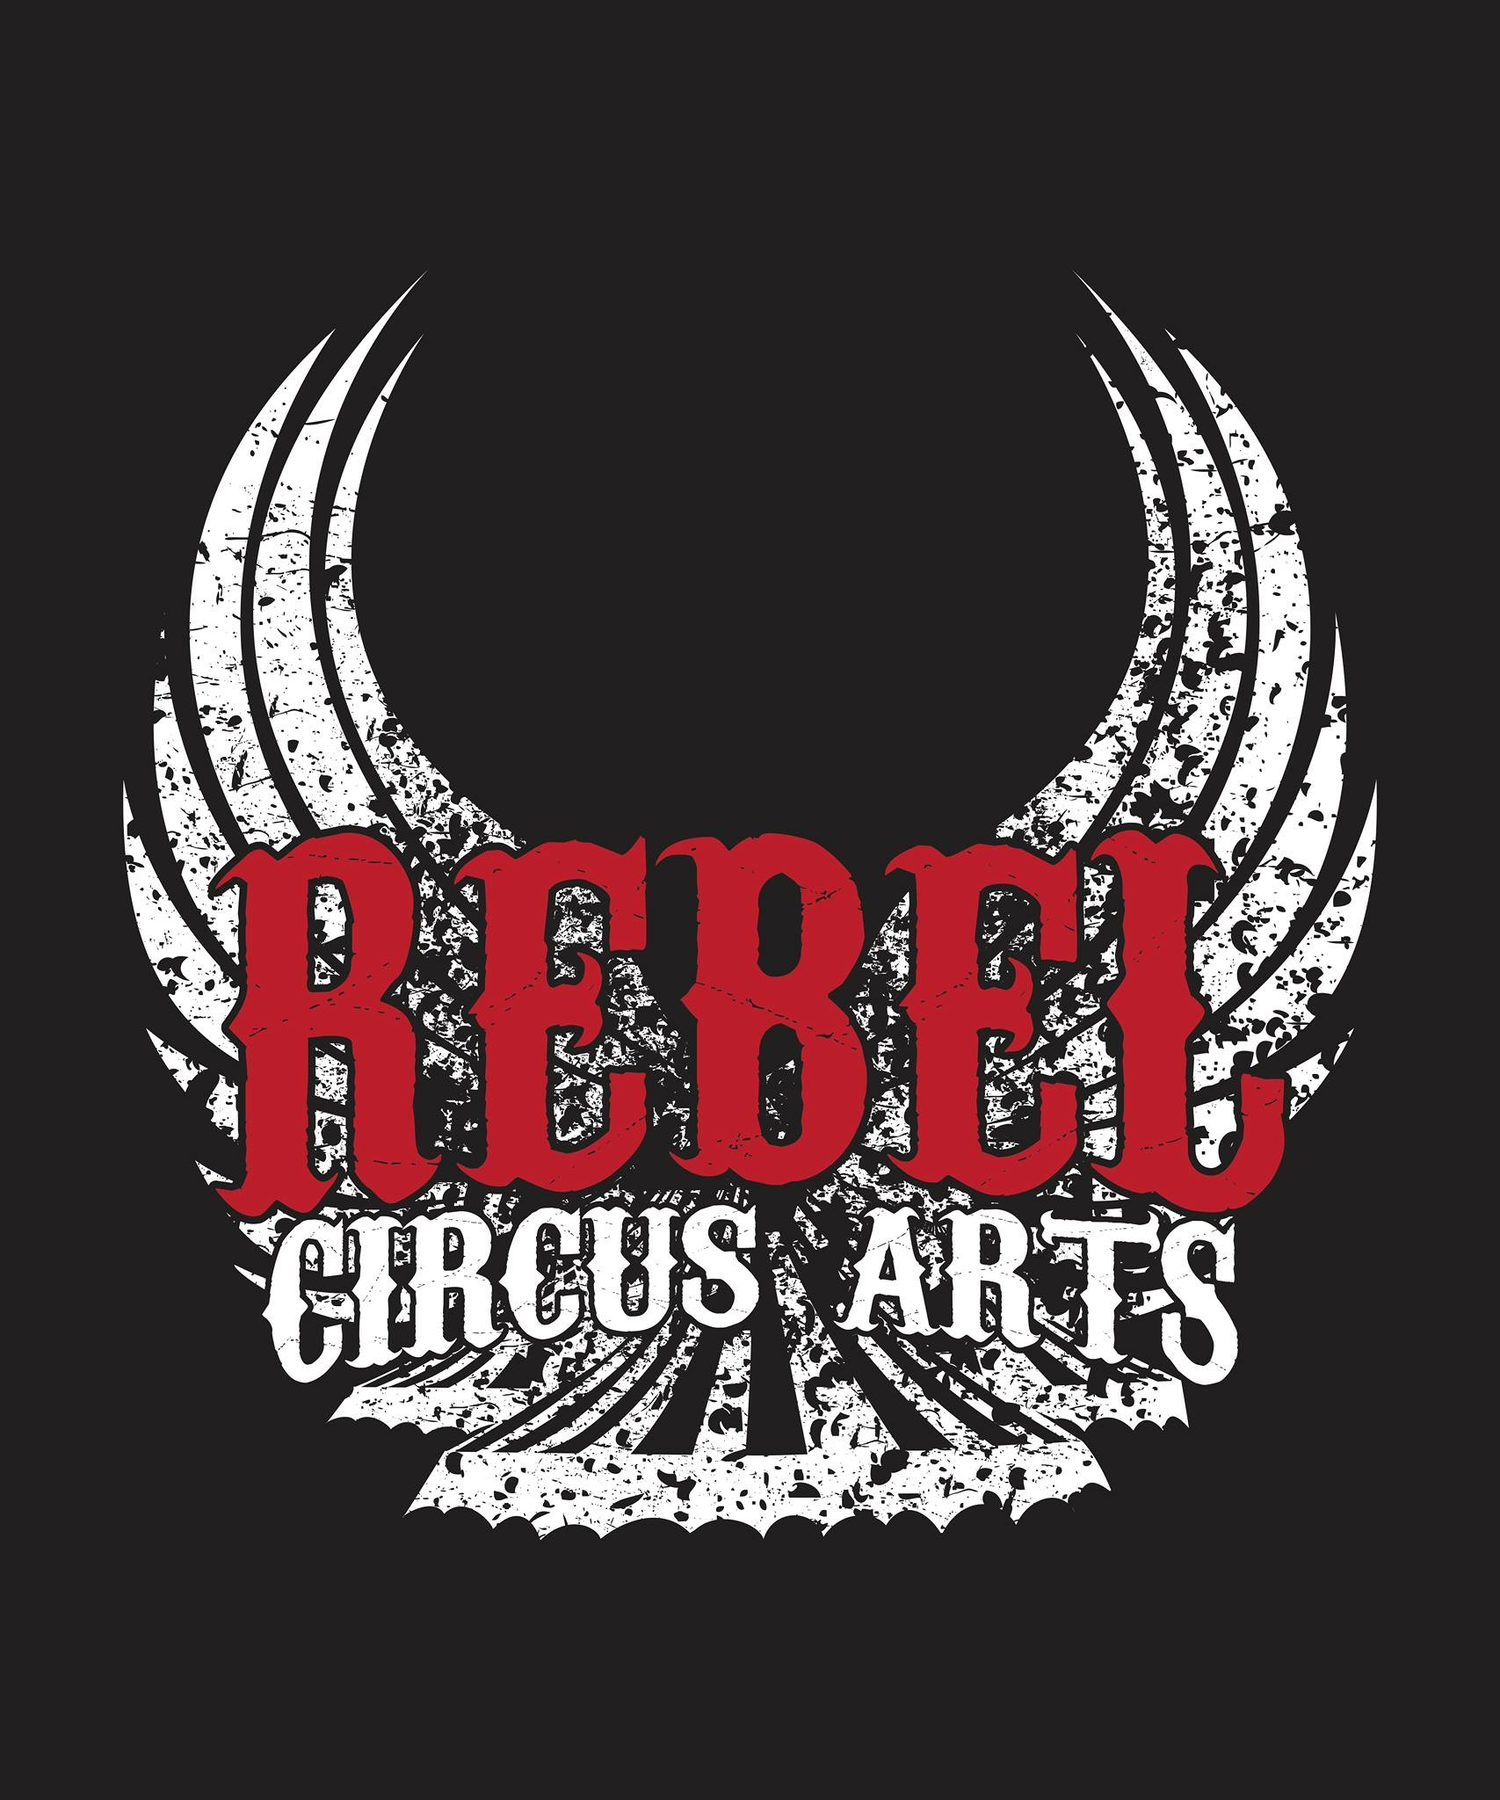 Rebel Circus Arts